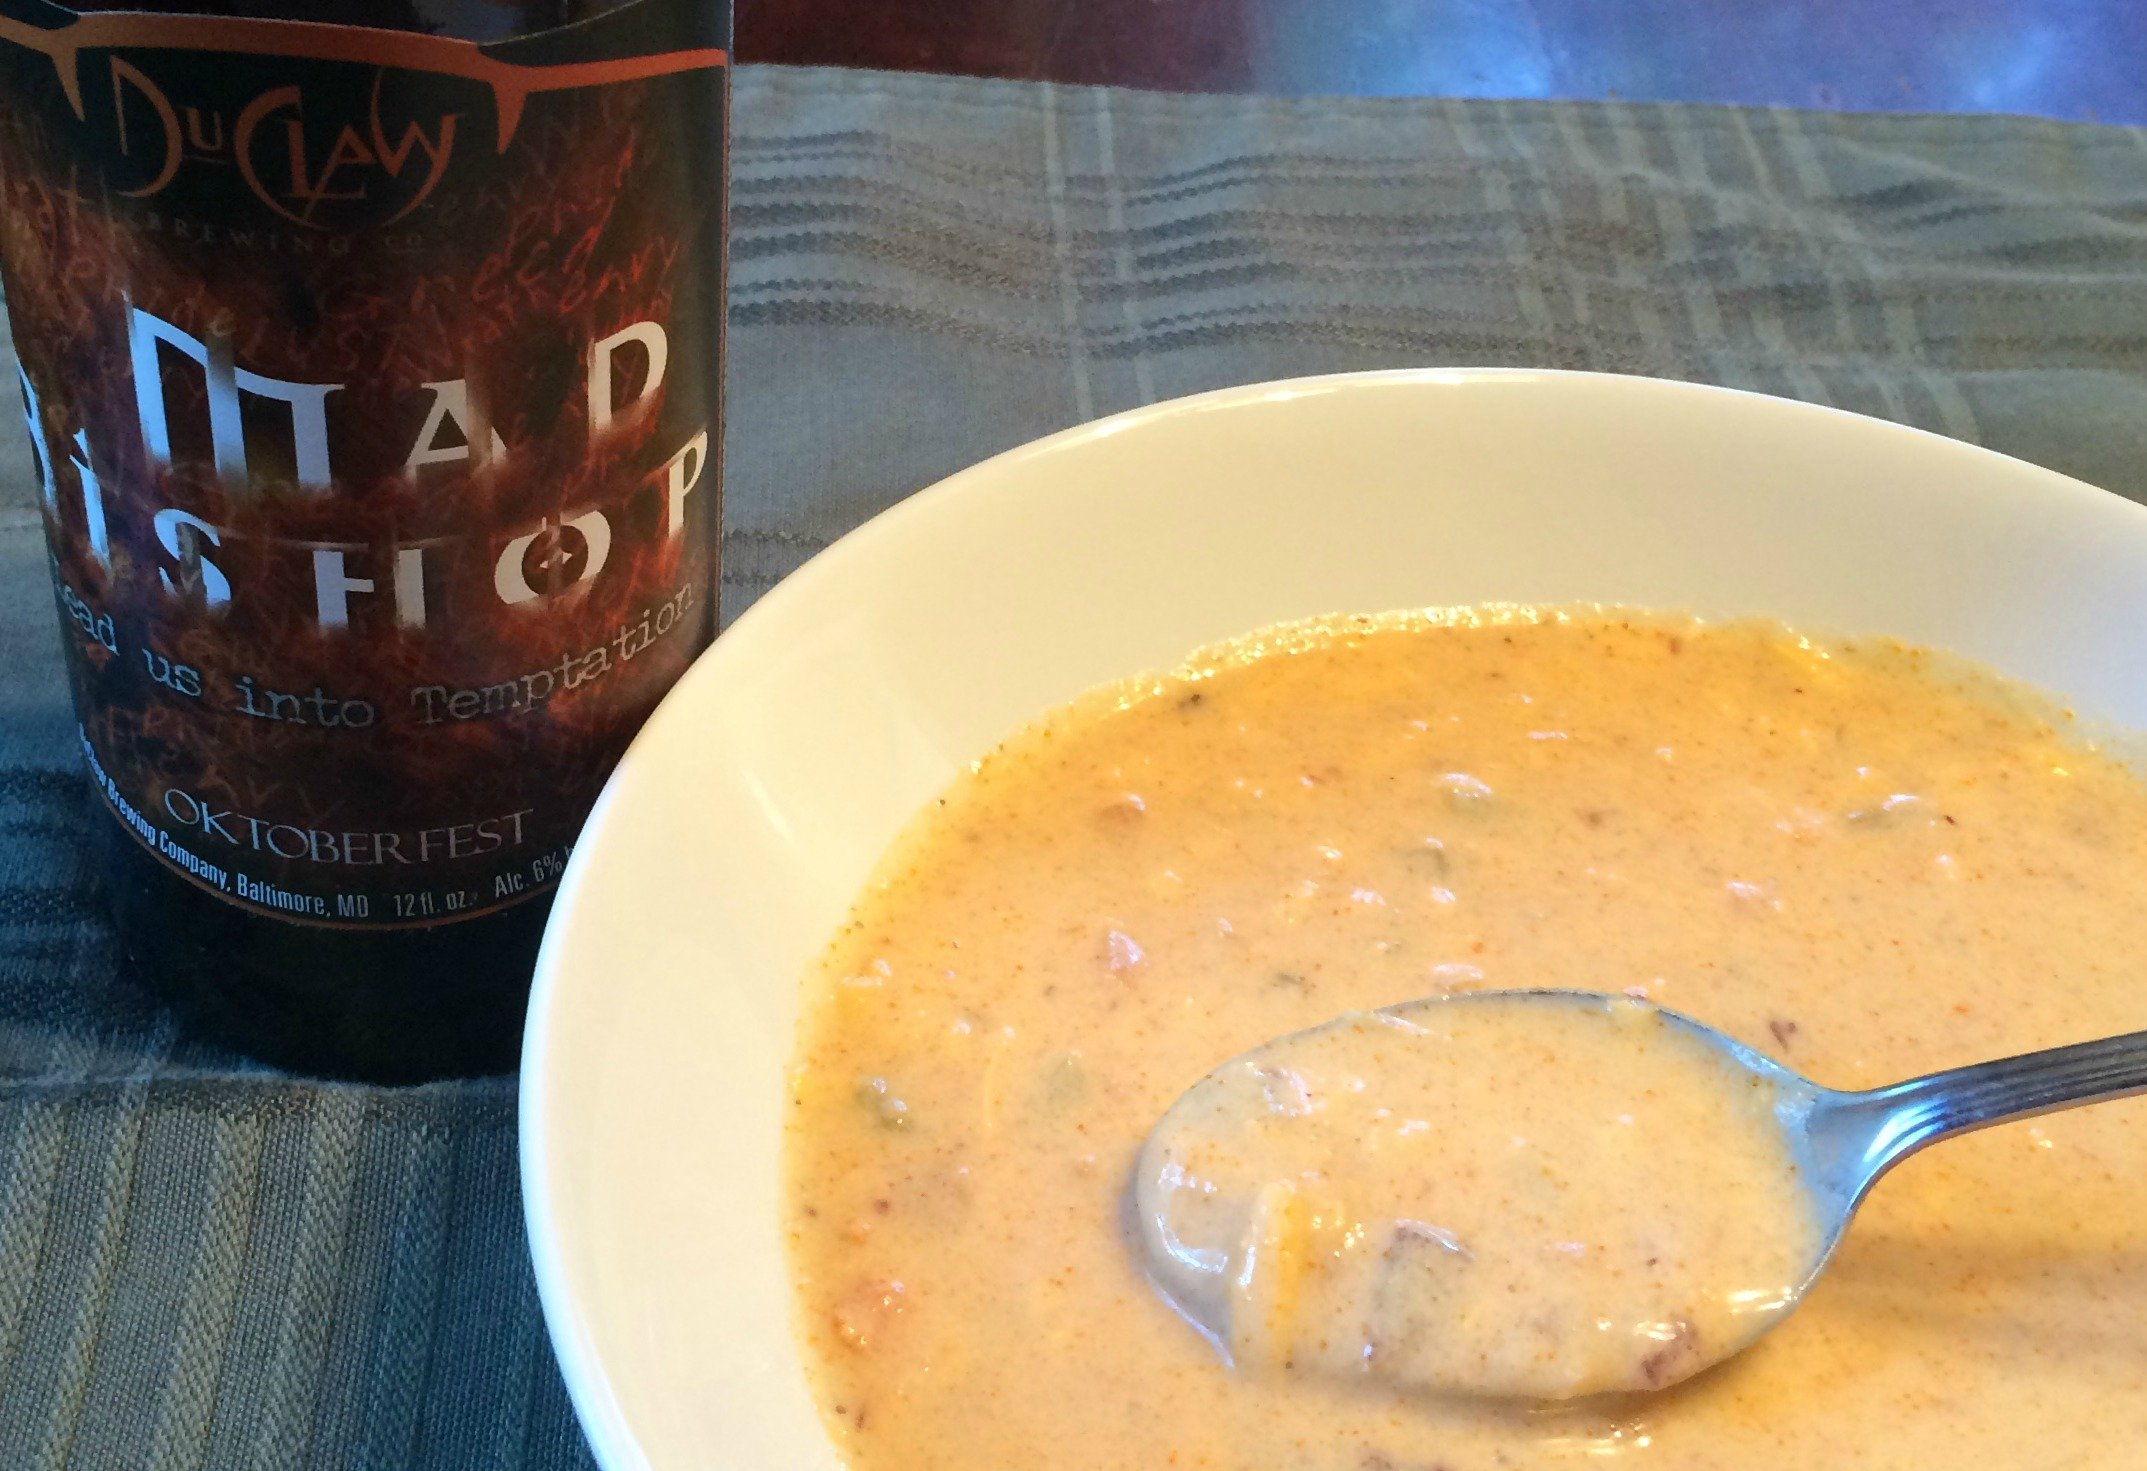 DuClaw Mad Bishop Spicy Beer cheese soup 2